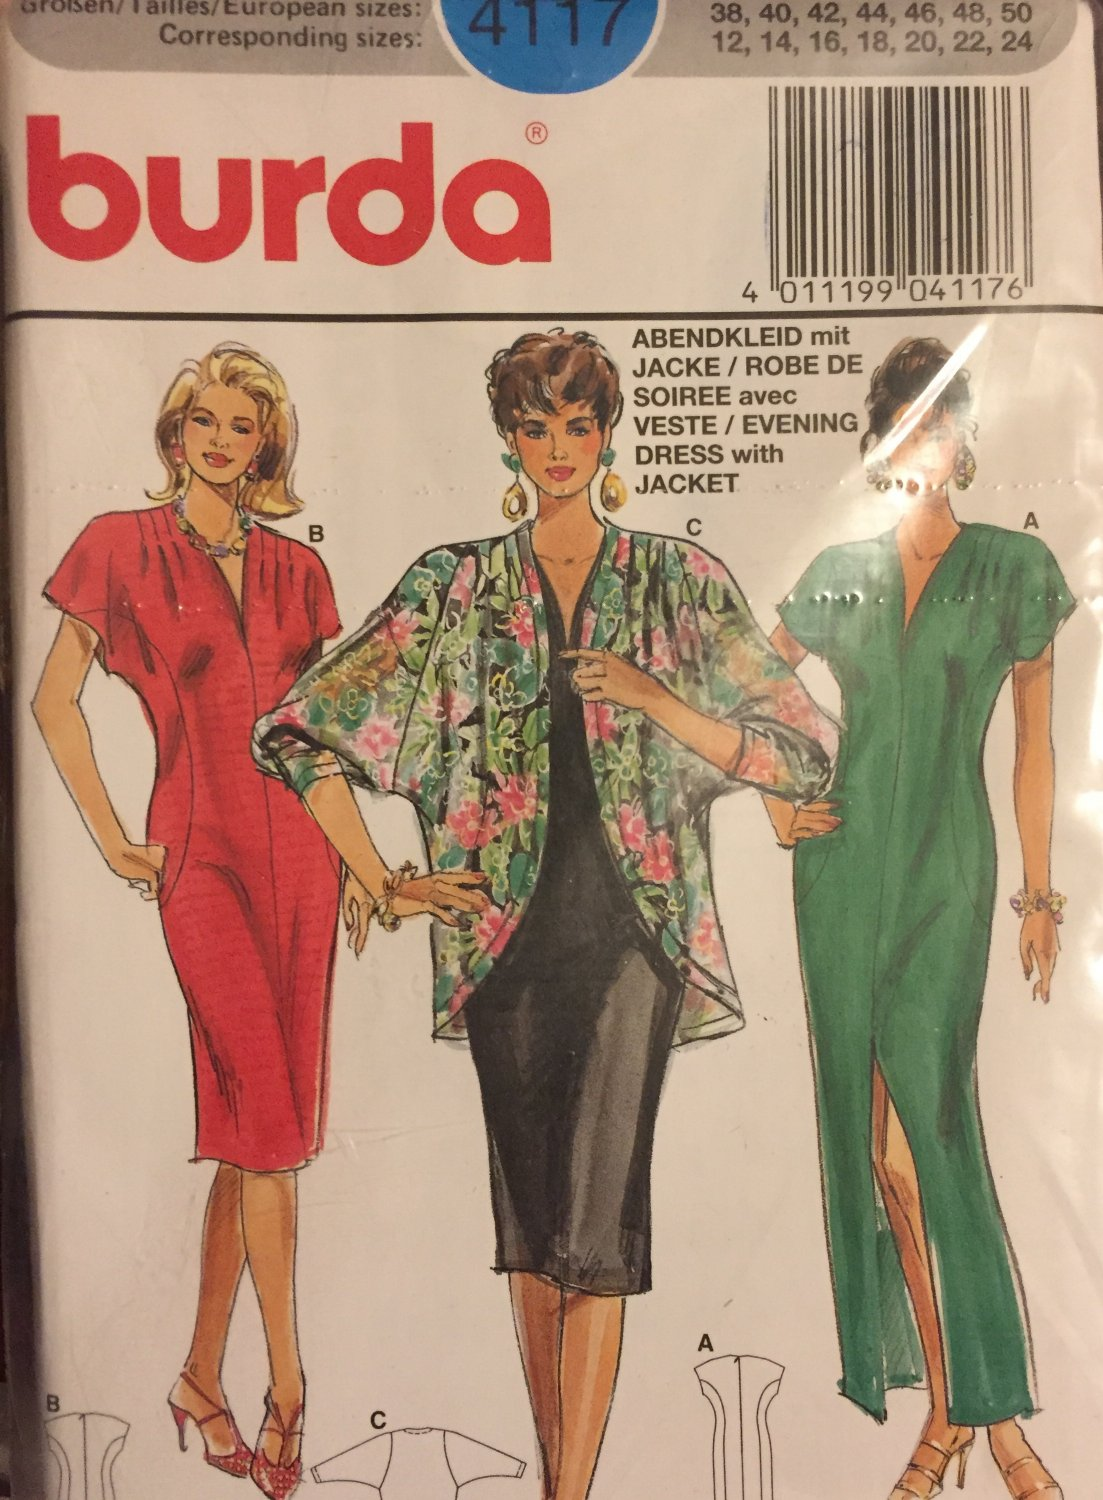 SOLD OUT Burda 4117 Tunic Dress Straight Skirt Raglan Sleeve Jacket, Size 12 - 24 Sewing Pattern,